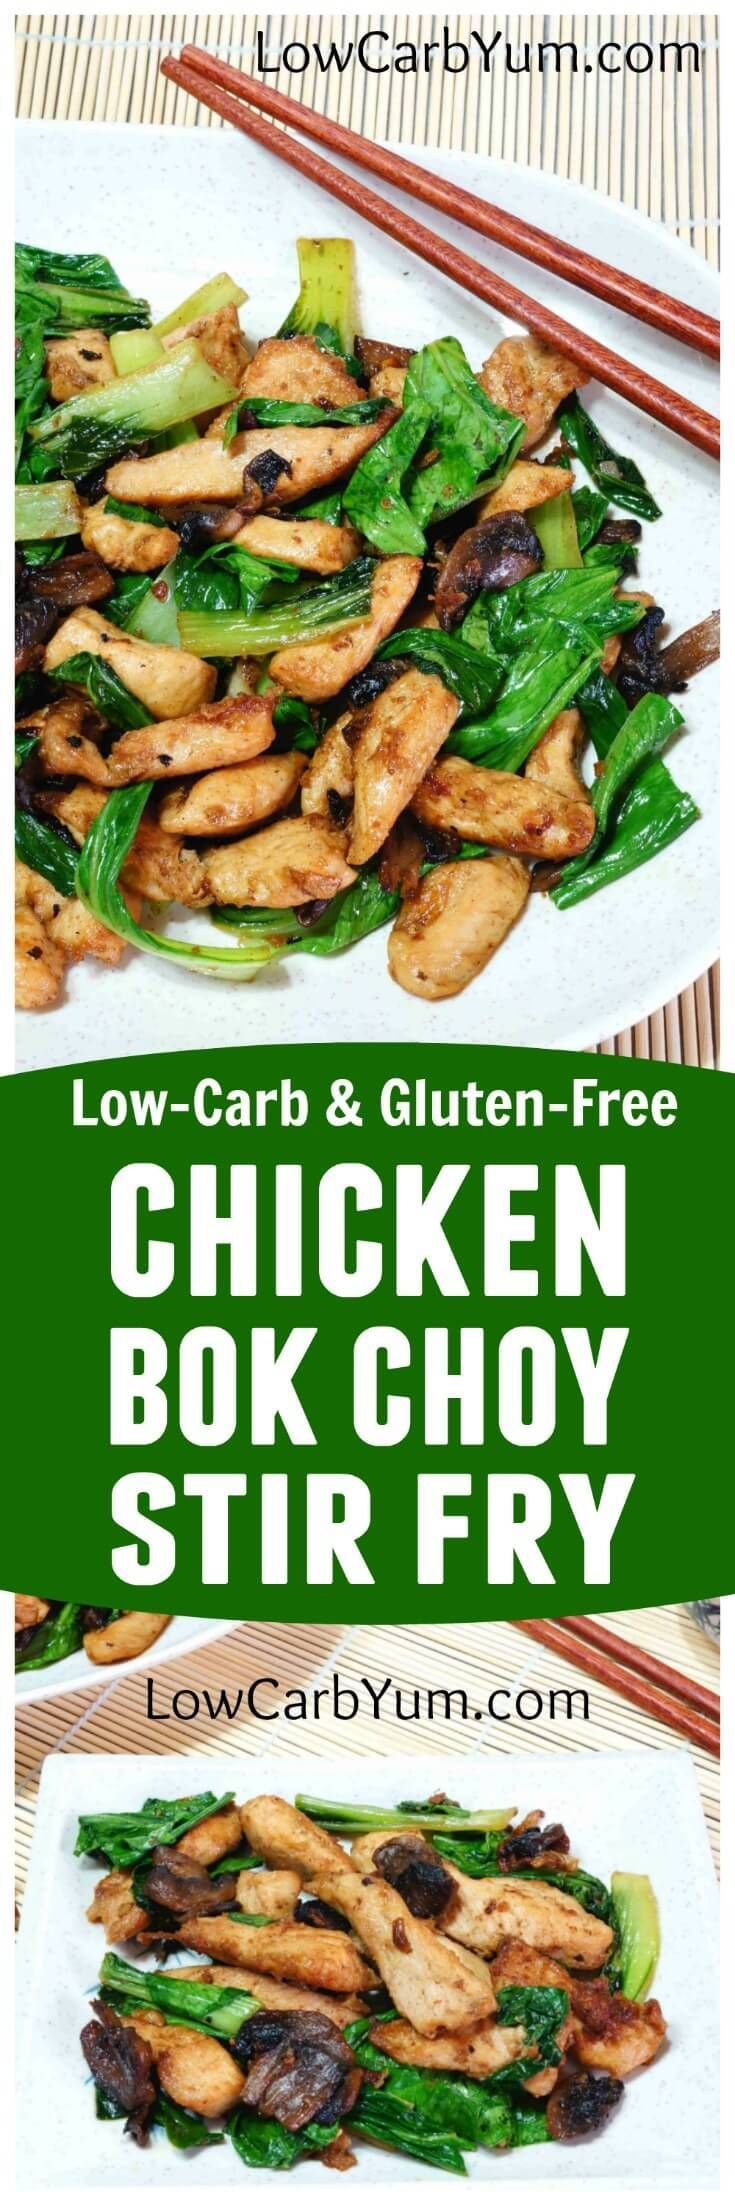 A delicious low carb and gluten free chicken bok choy stir fry recipe. The meat is dipped in egg yolks and coconut flour instead of the traditional corn starch mix. | http://LowCarbYum.com